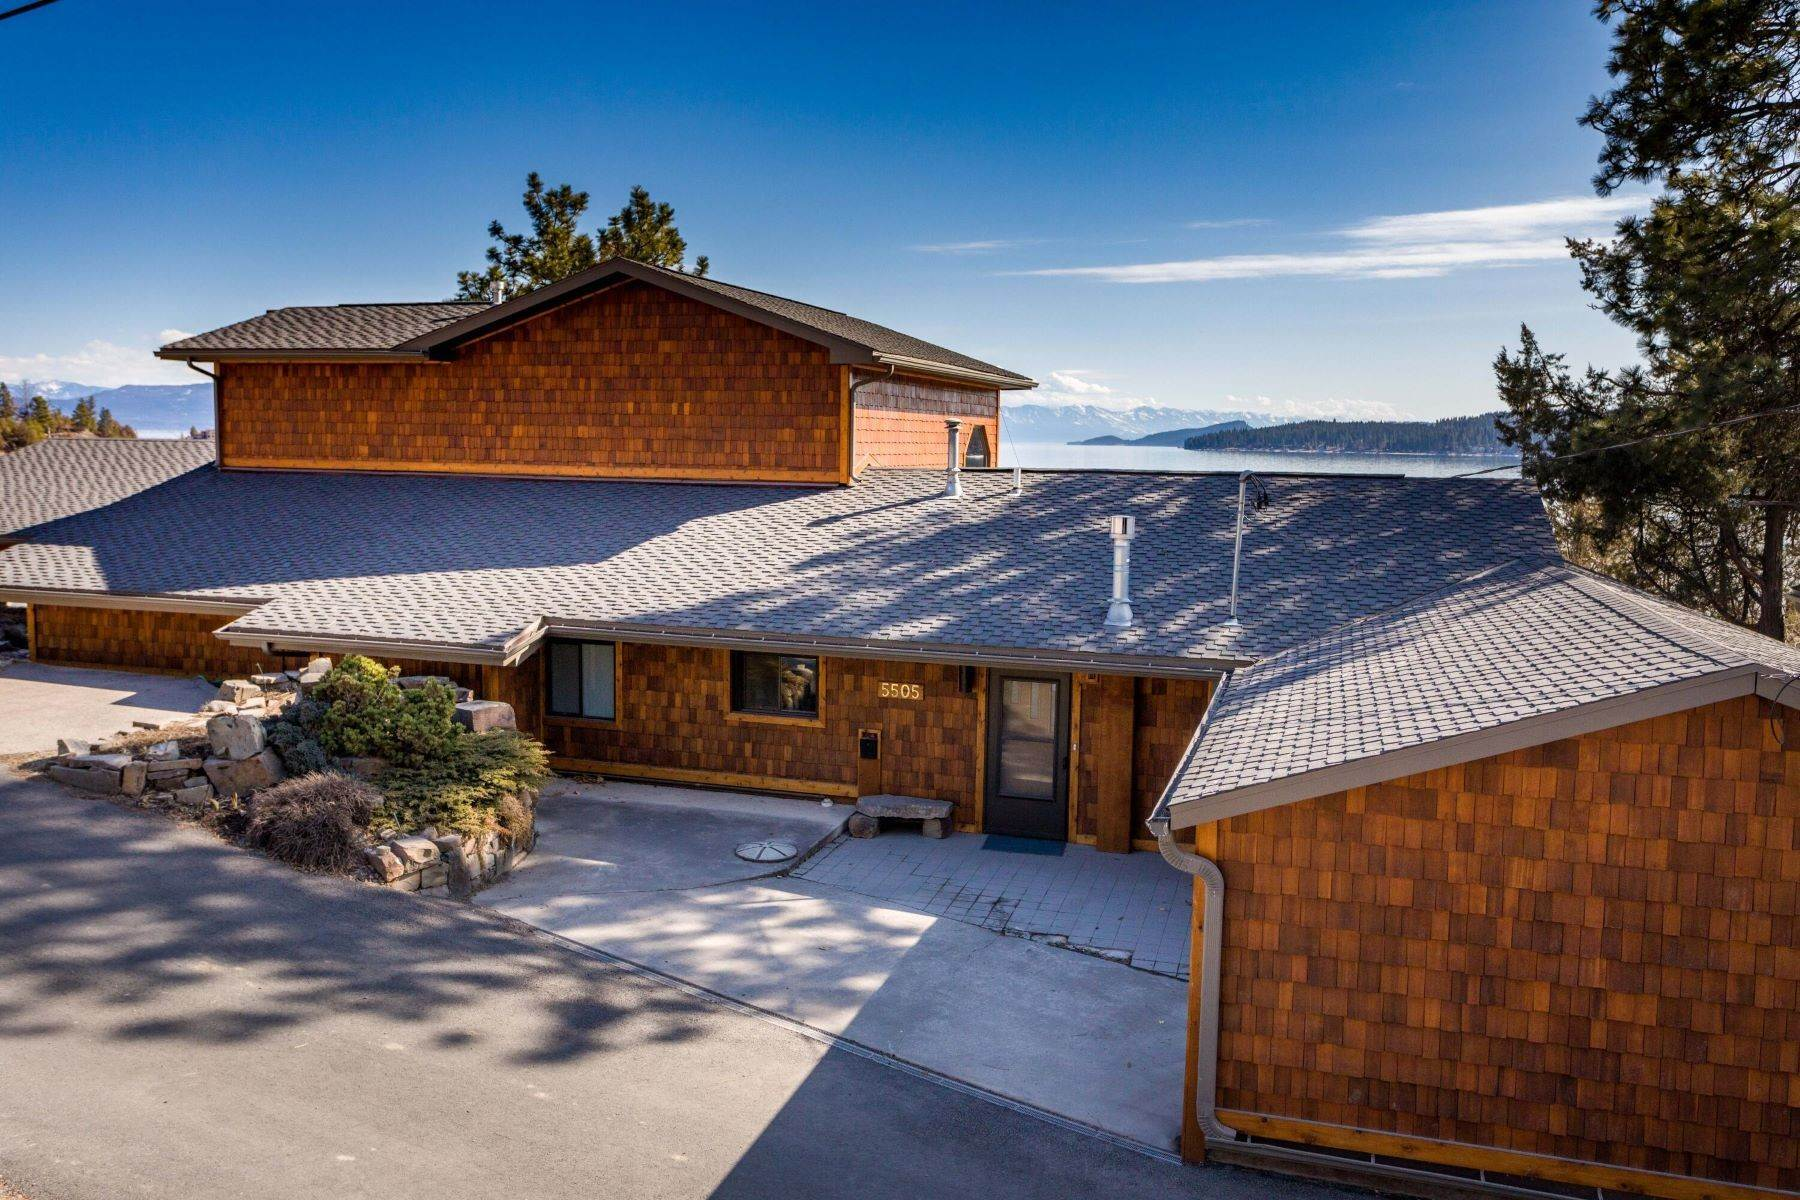 30. Single Family Homes for Sale at Flathead Lake Living 5505 Us Hwy 93 Somers, Montana 59932 United States